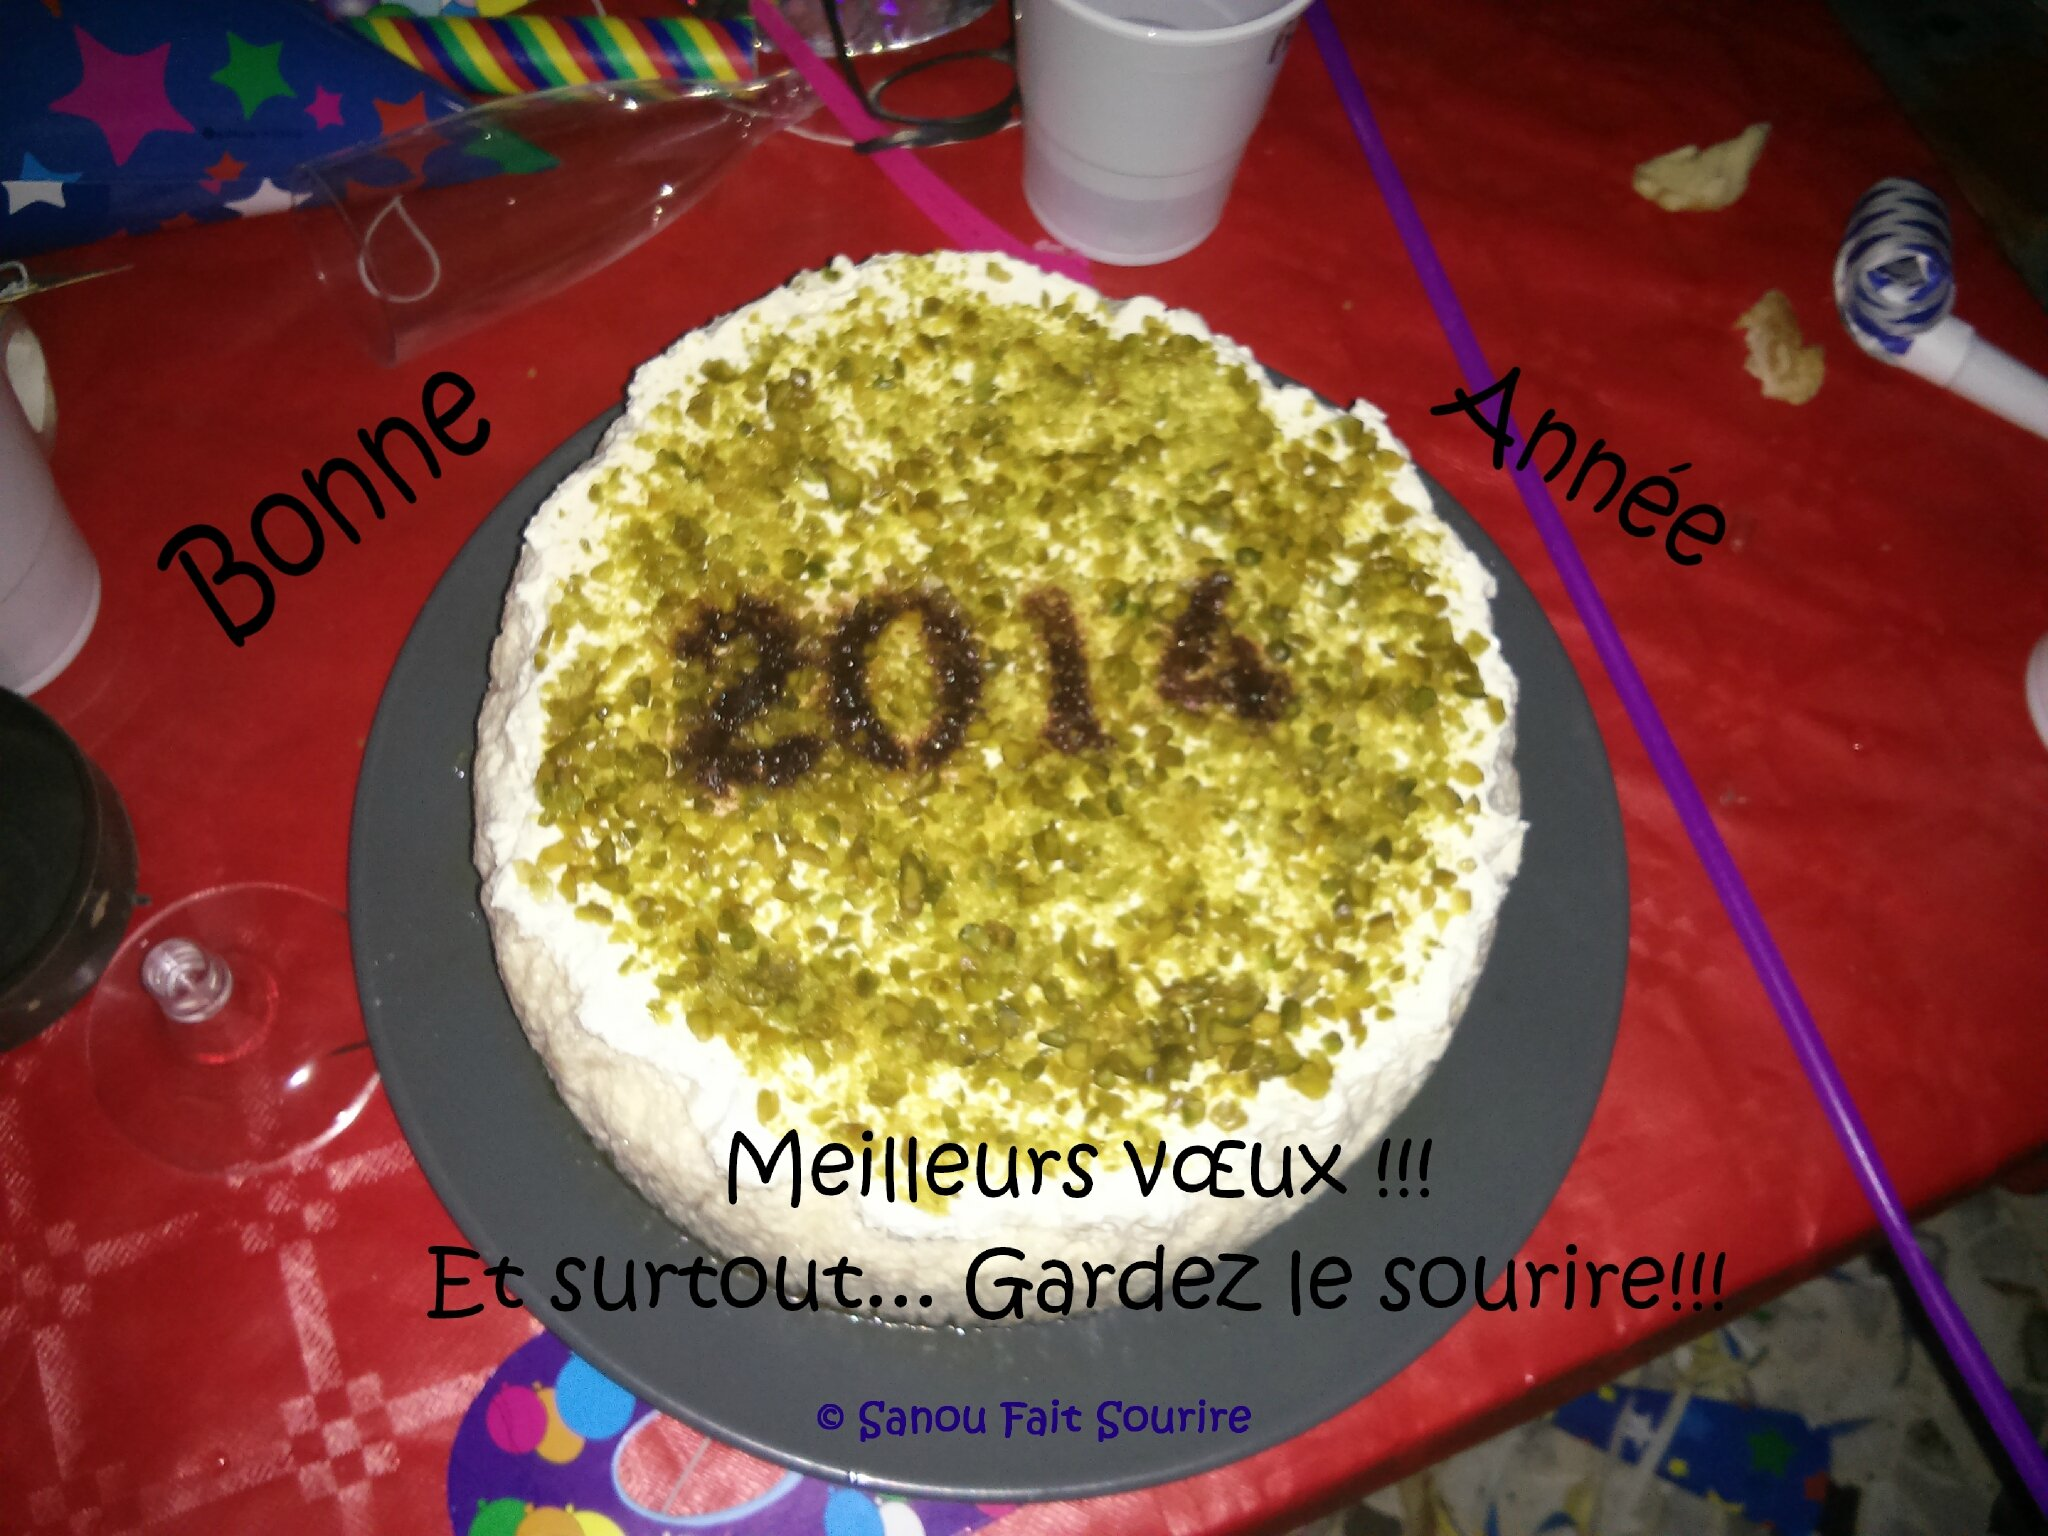 Mission Cheesecake 2014 - Janvier : The Cheesecake Newyorkais